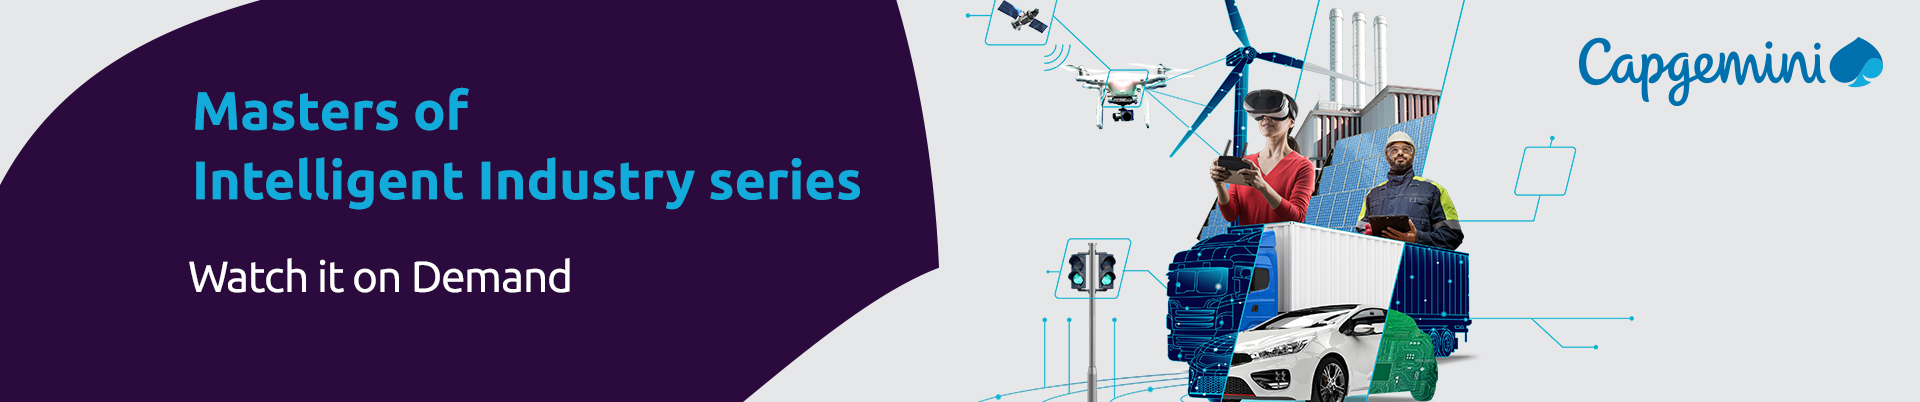 Masters of Intelligent Industry Series - Recordings on demand